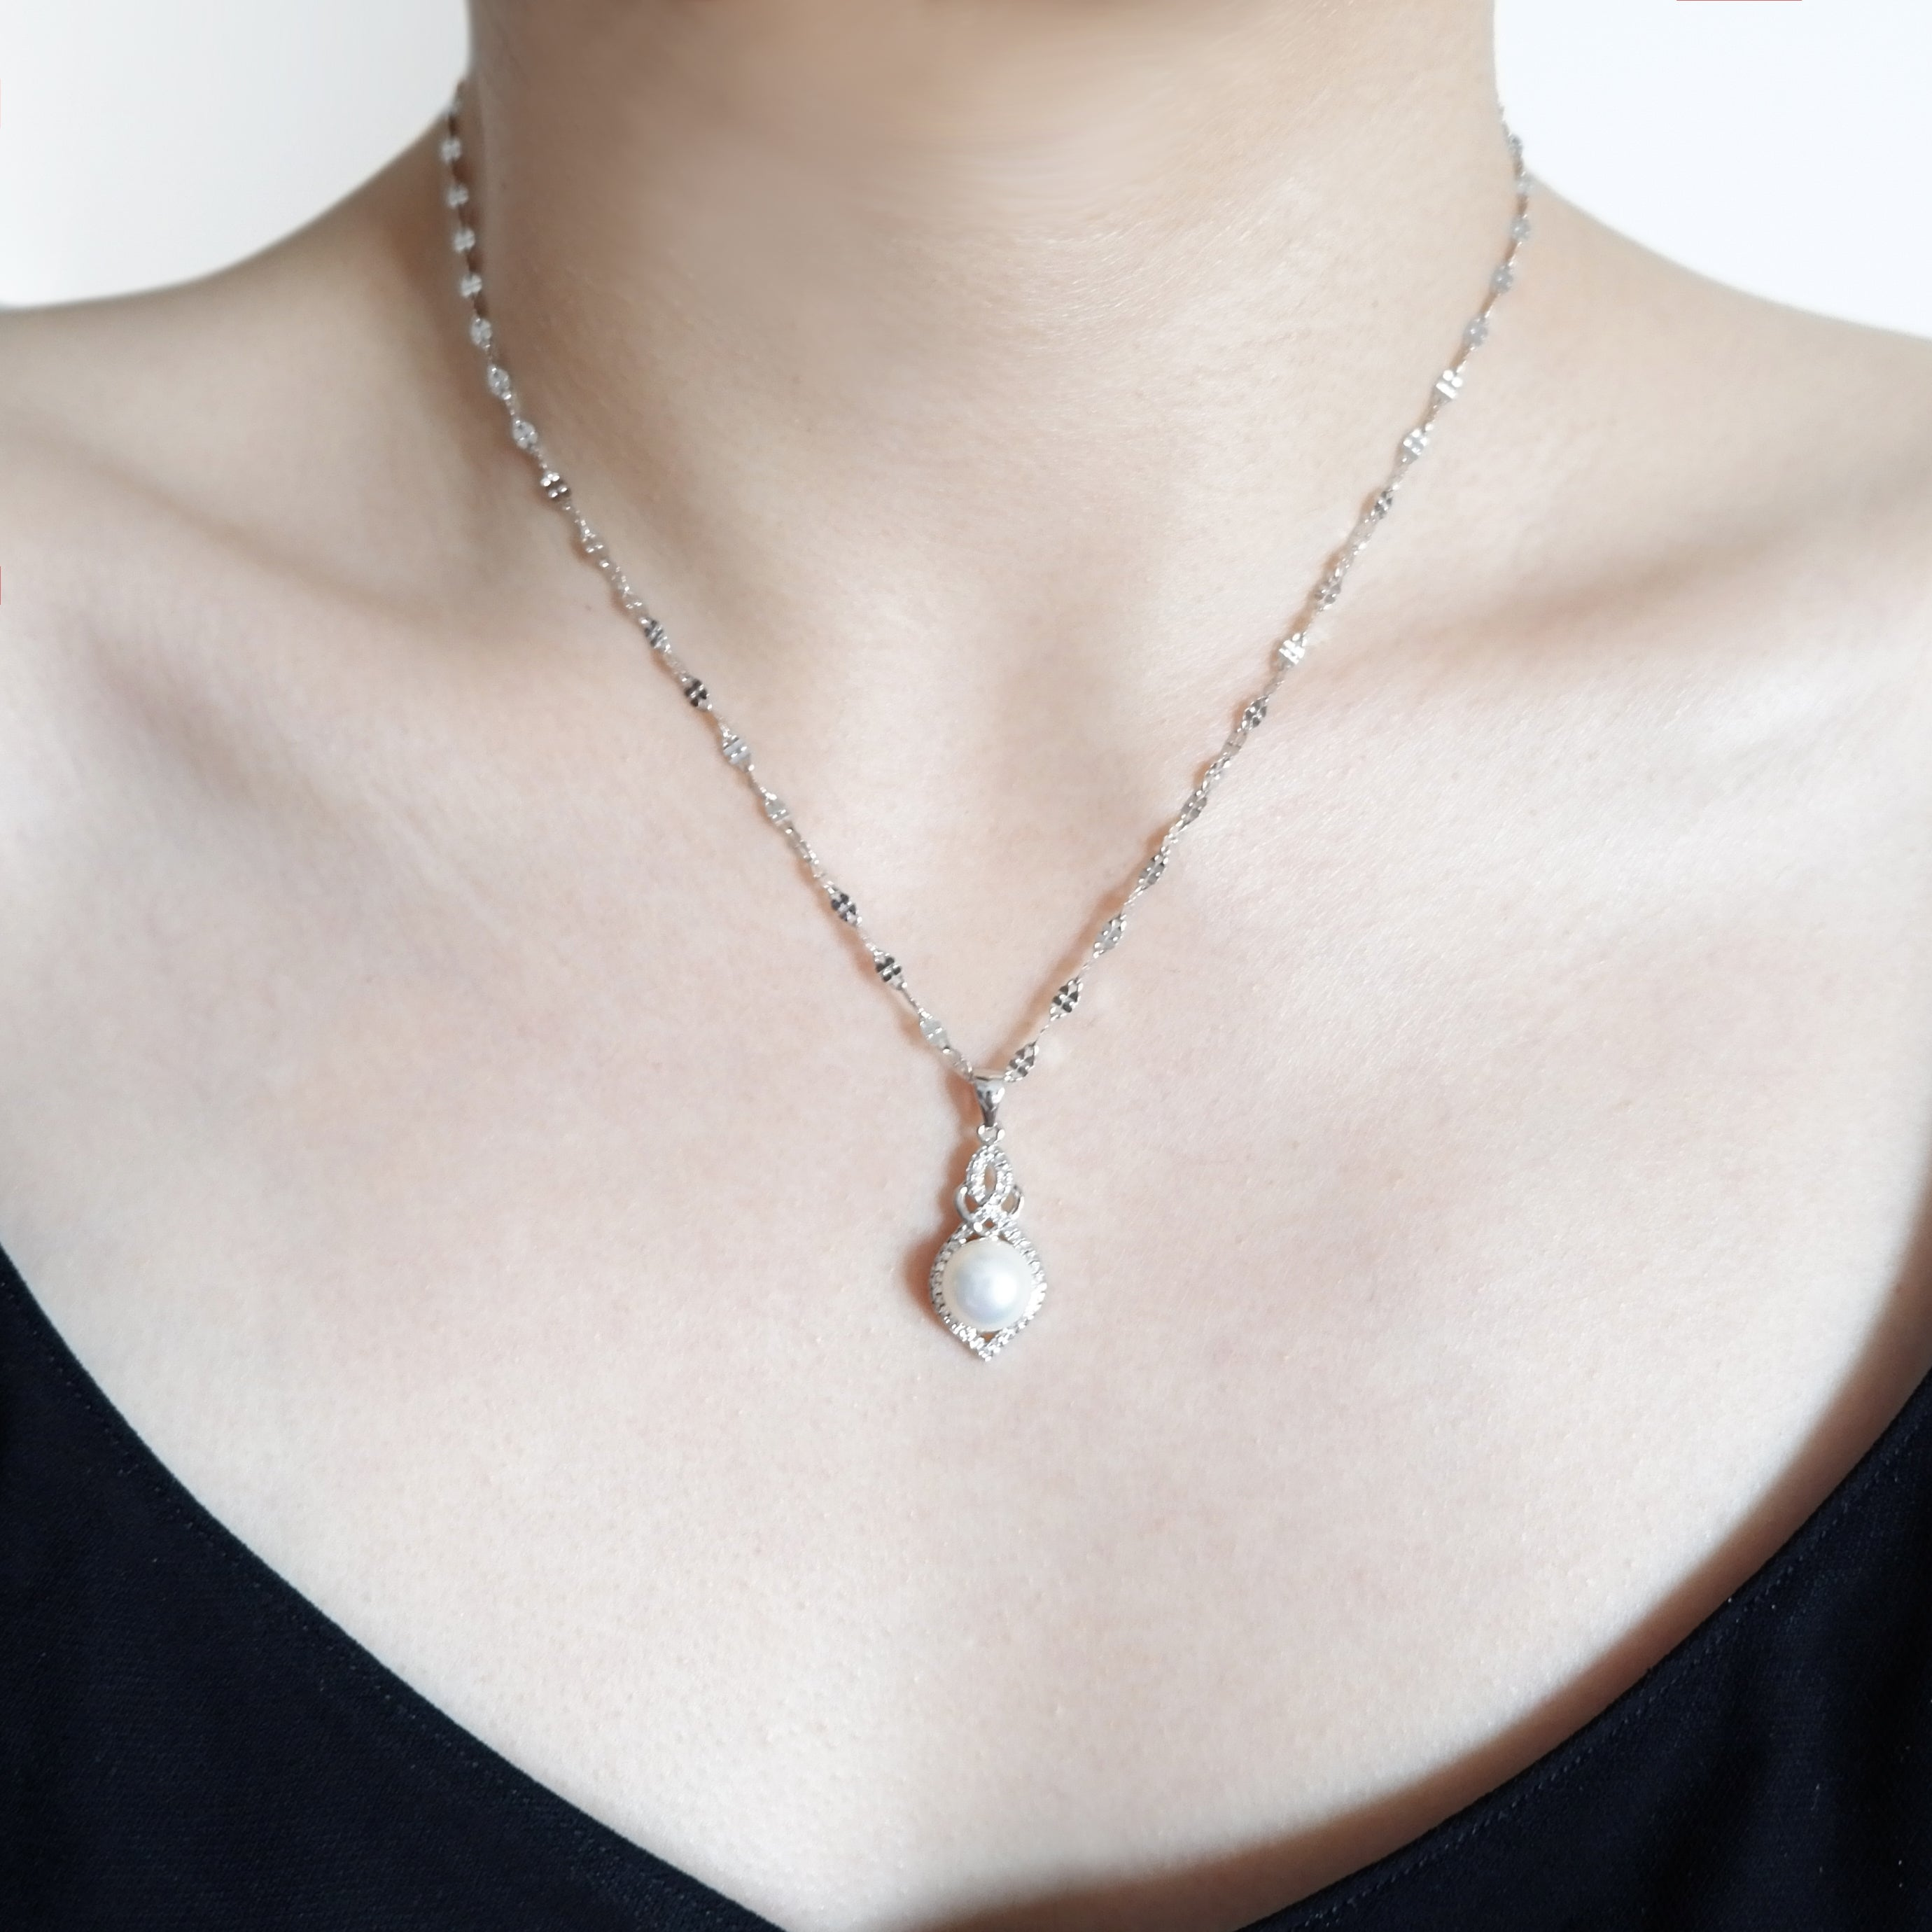 THE GOURD NECKLACE SILVER CHAIN